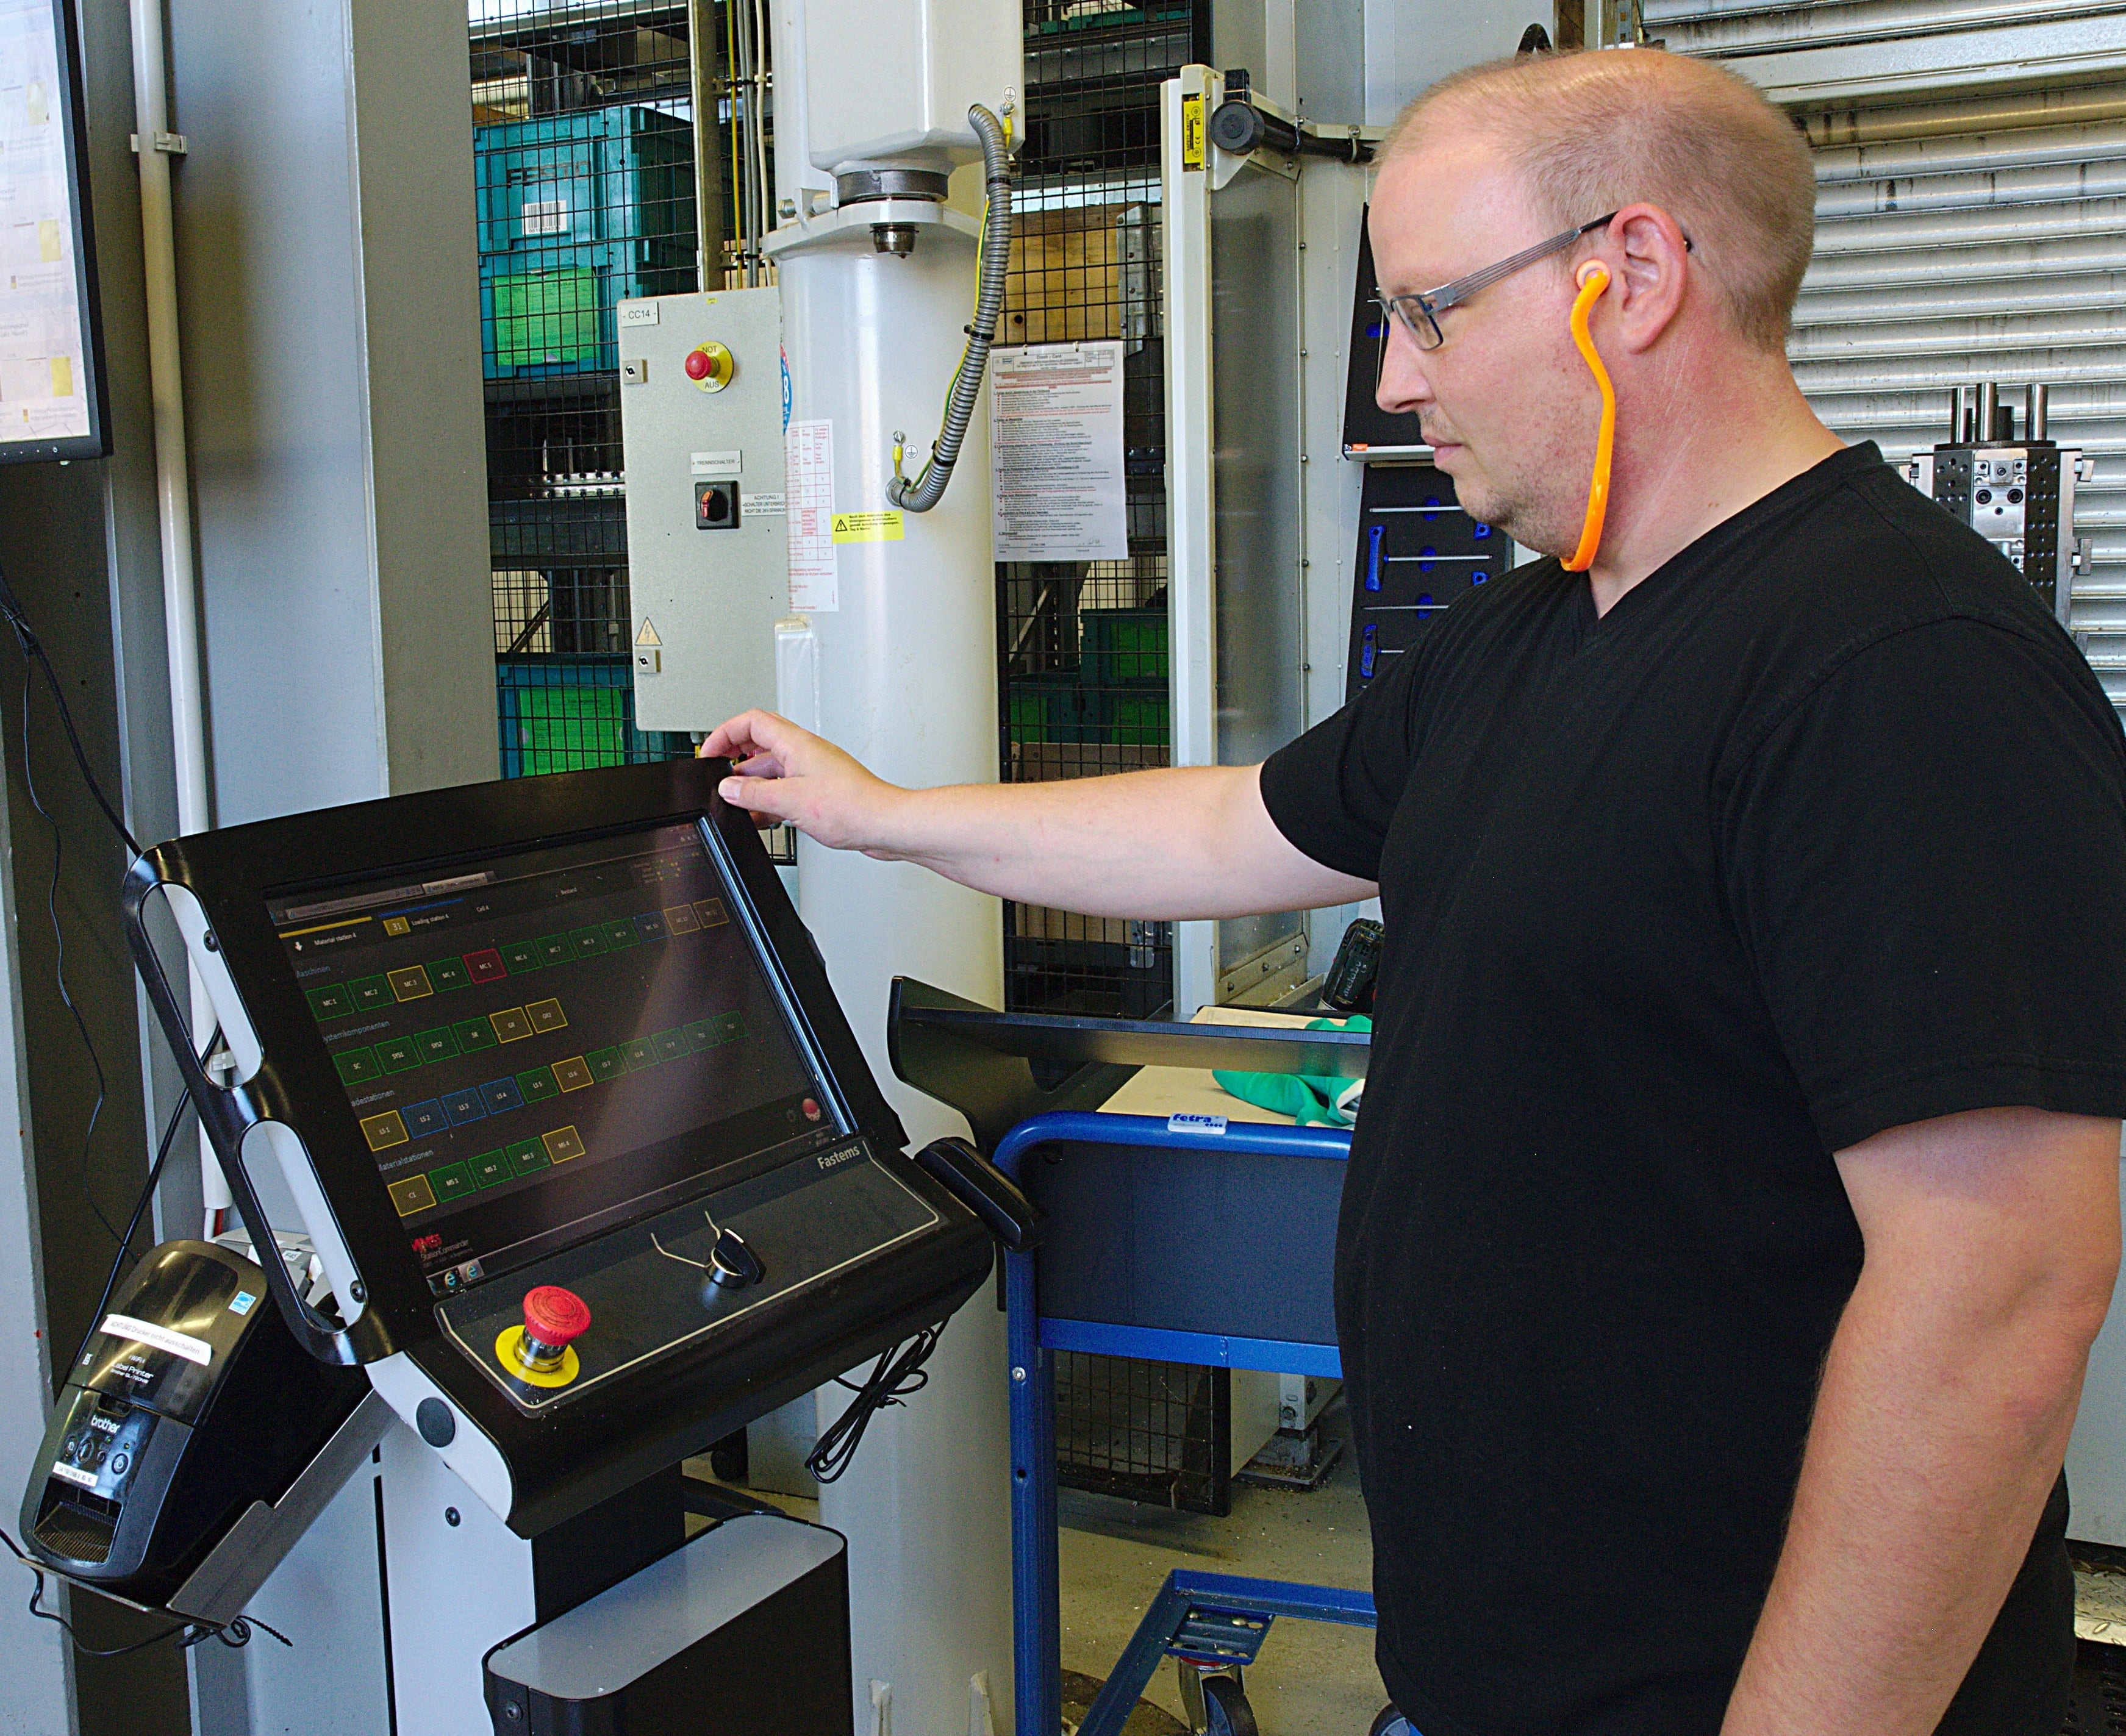 Each loading cell has a terminal with Fastems MMS. The software controls items such as the job-based pallet order in the MLS and manages all CNC programs and tool data.